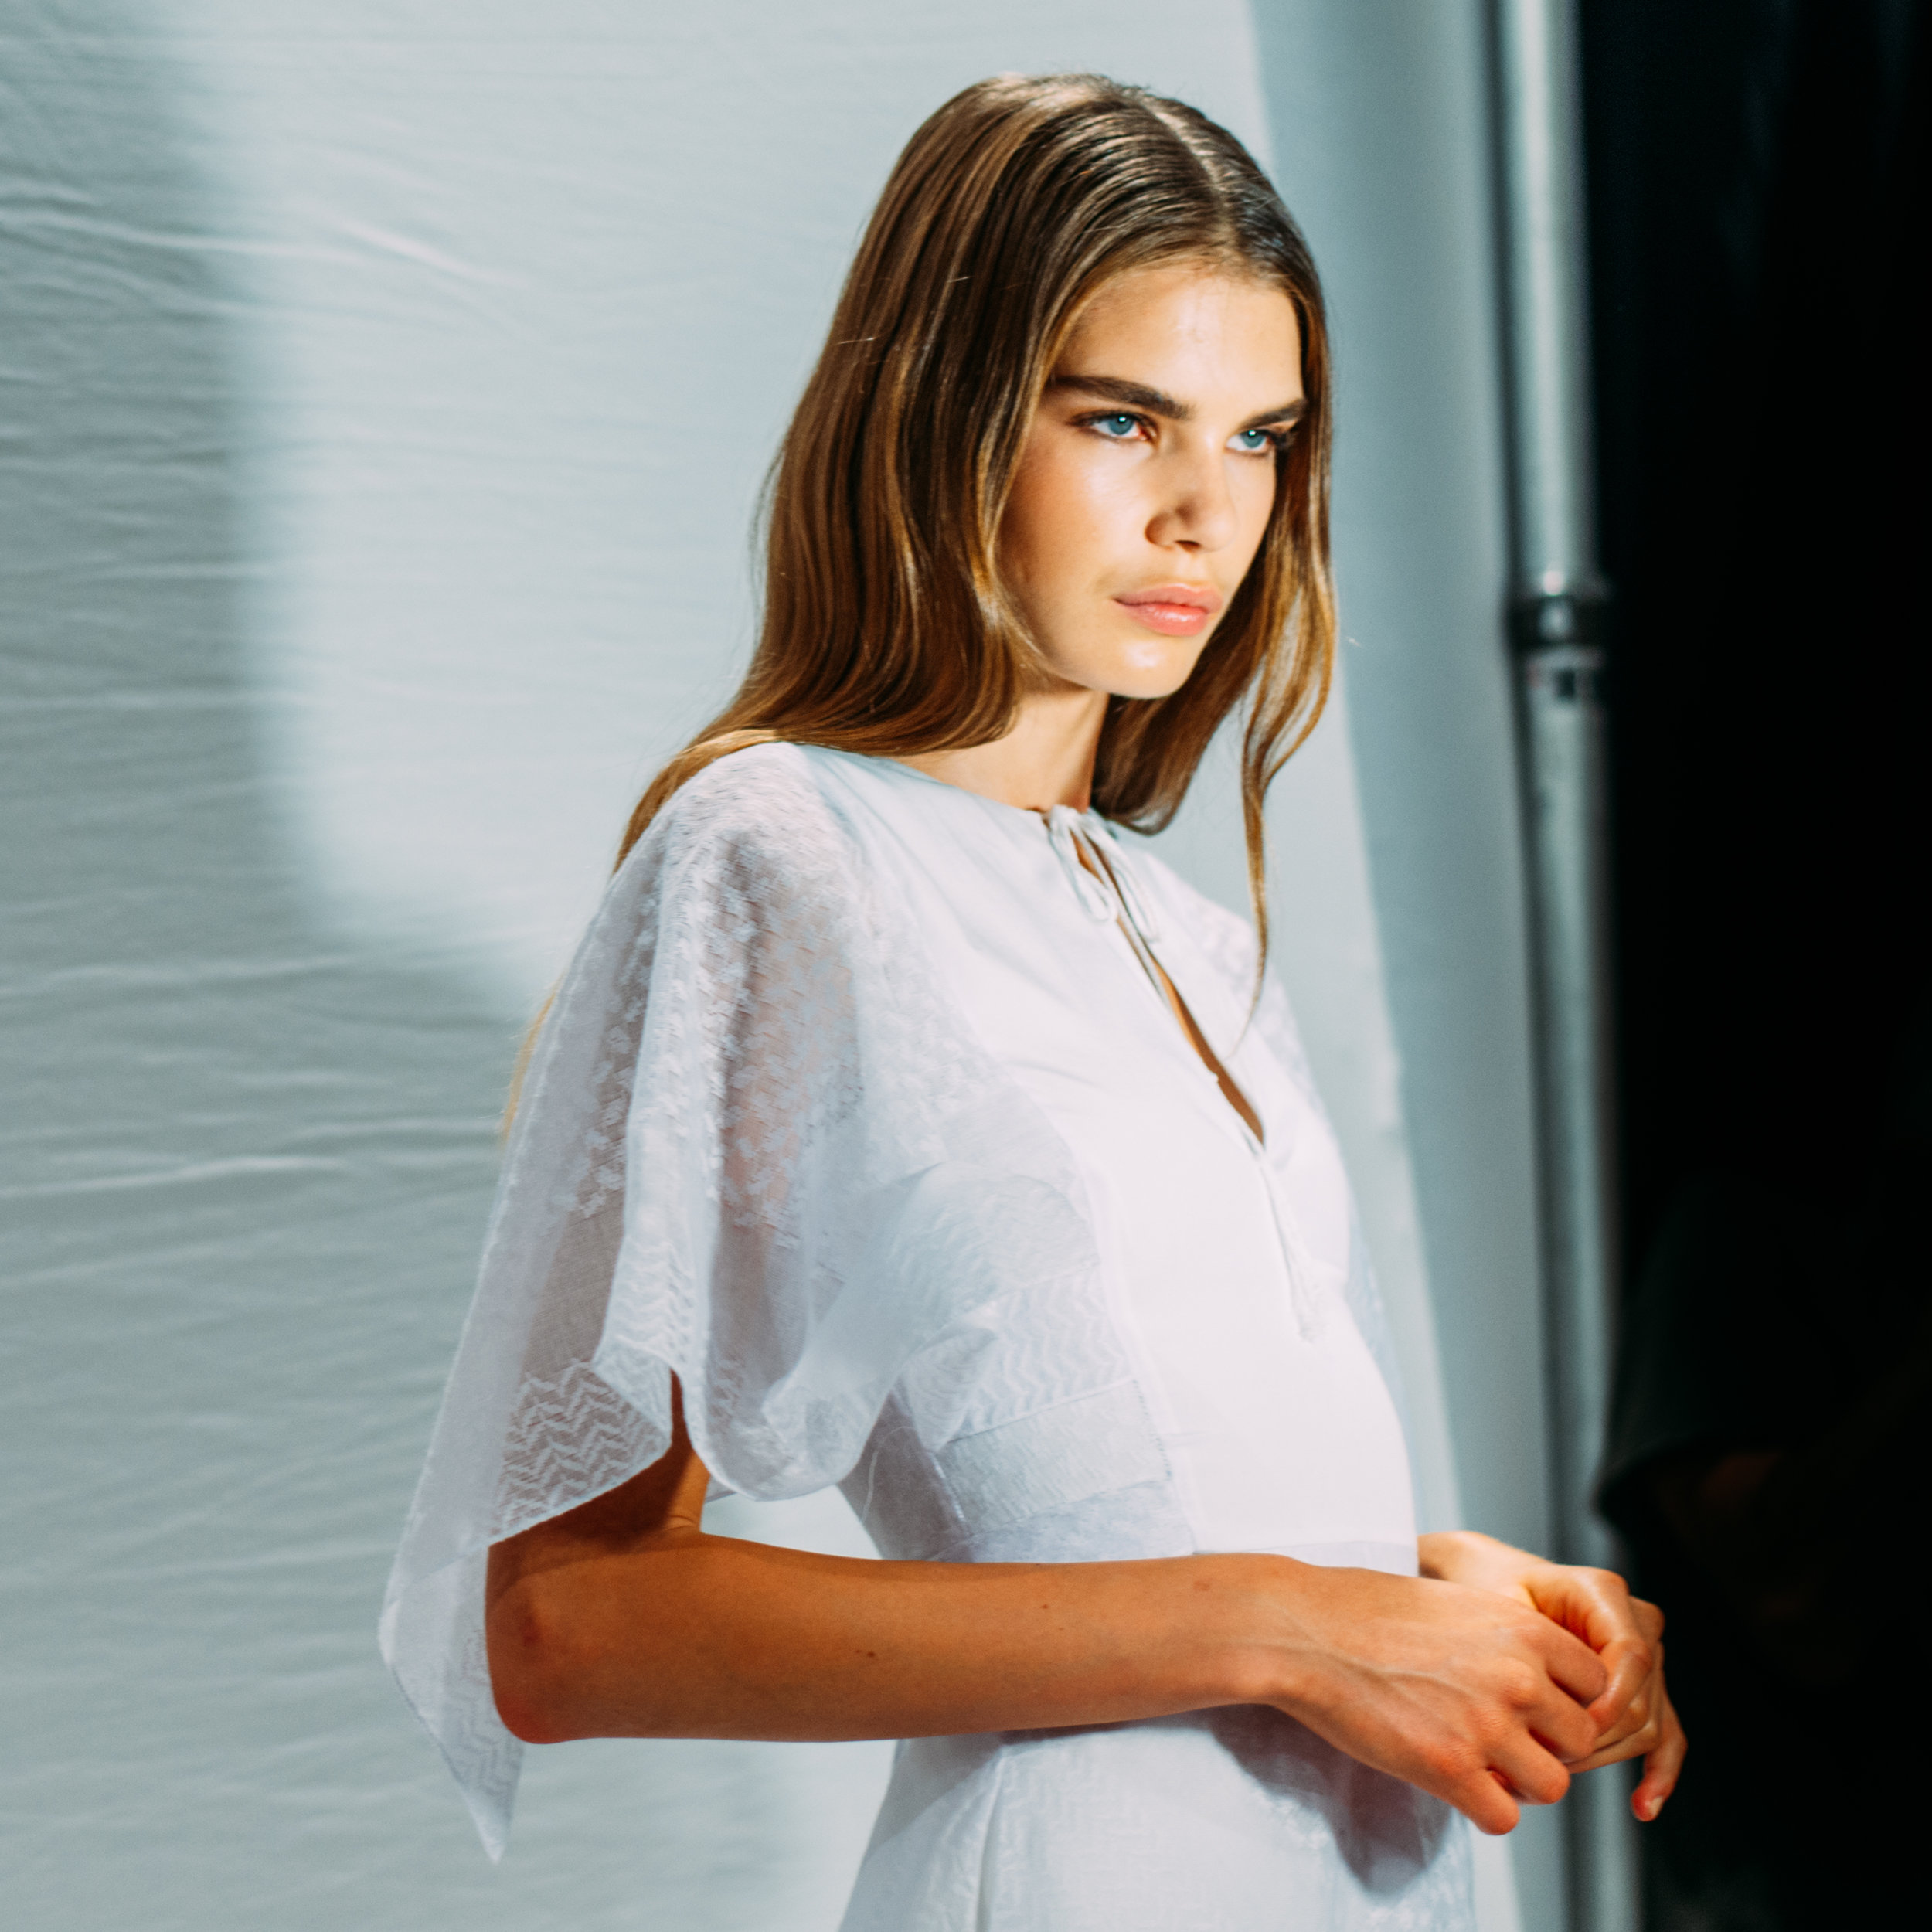 Greenberg_NYFW_NBN_090618-766.jpg